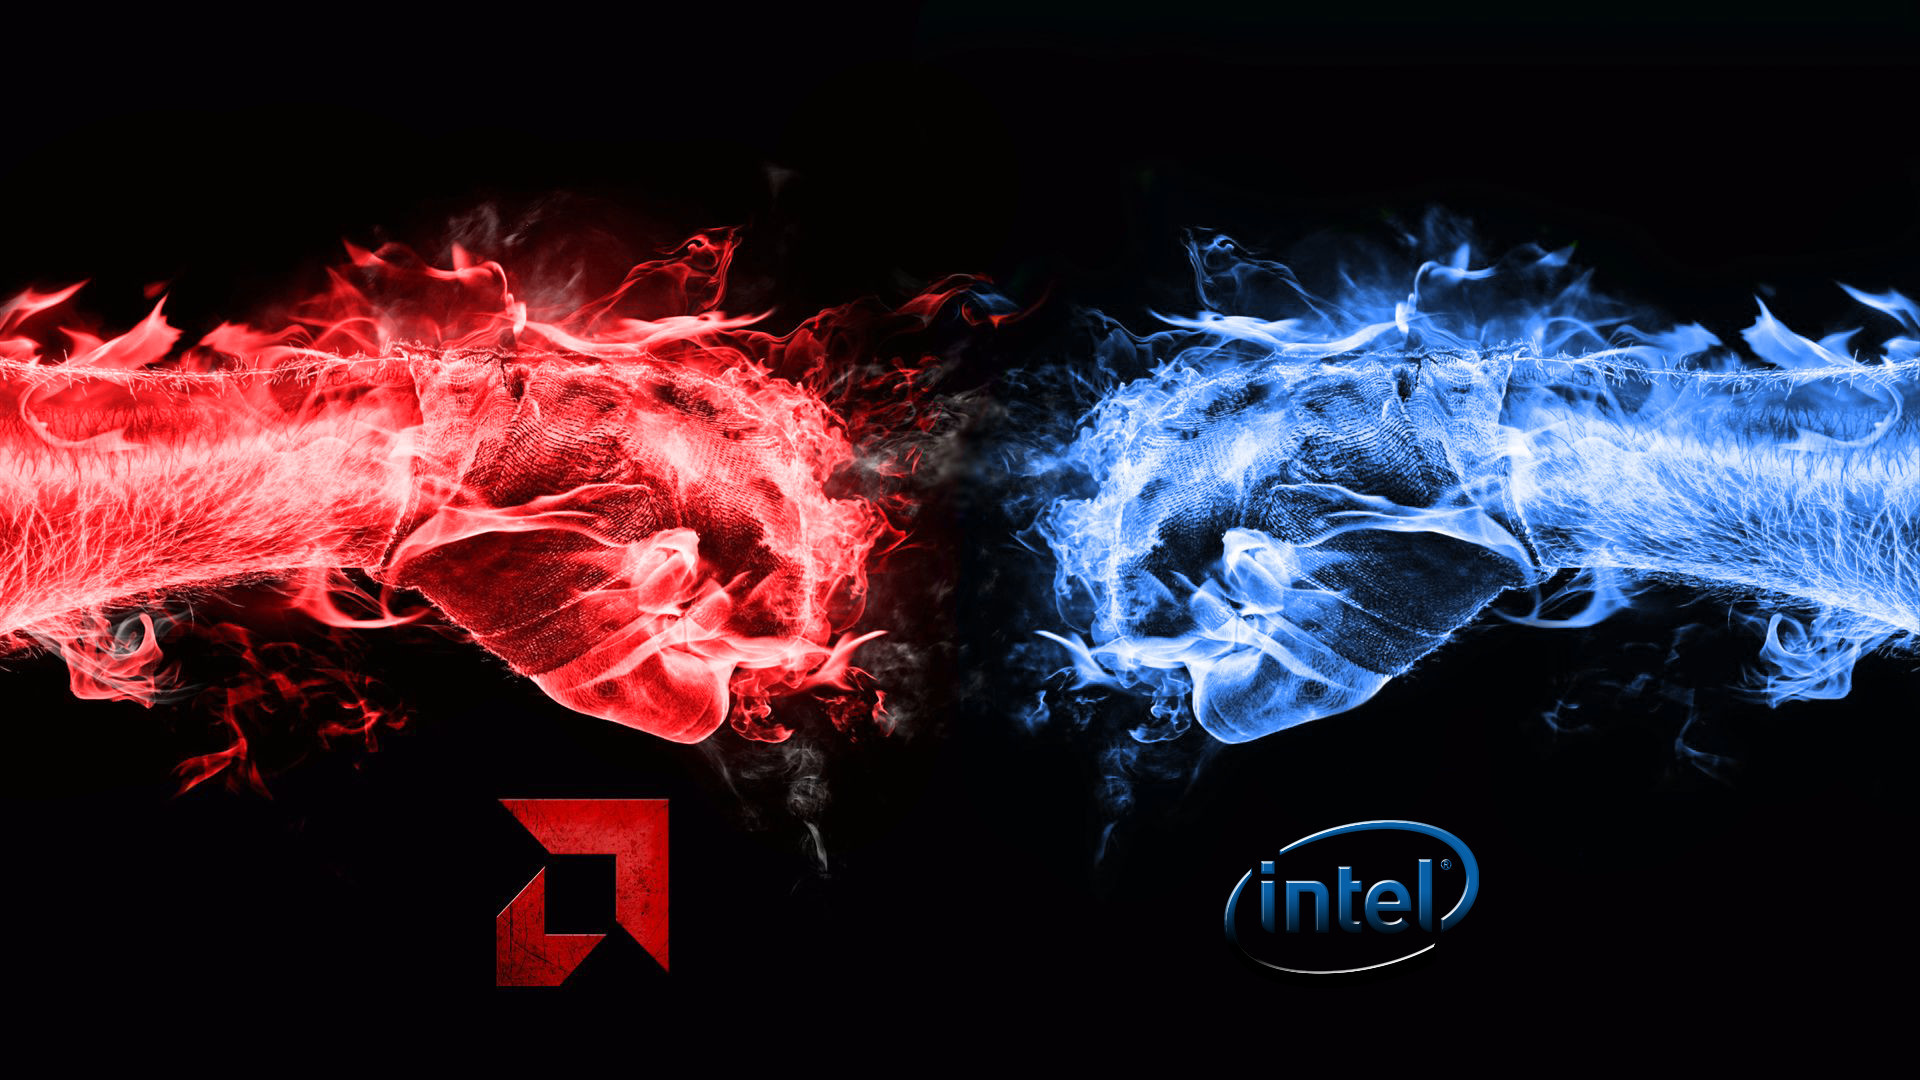 AMD's Upcoming Ryzen Launch to Prompt Reshuffle of Intel's CPU Line-up